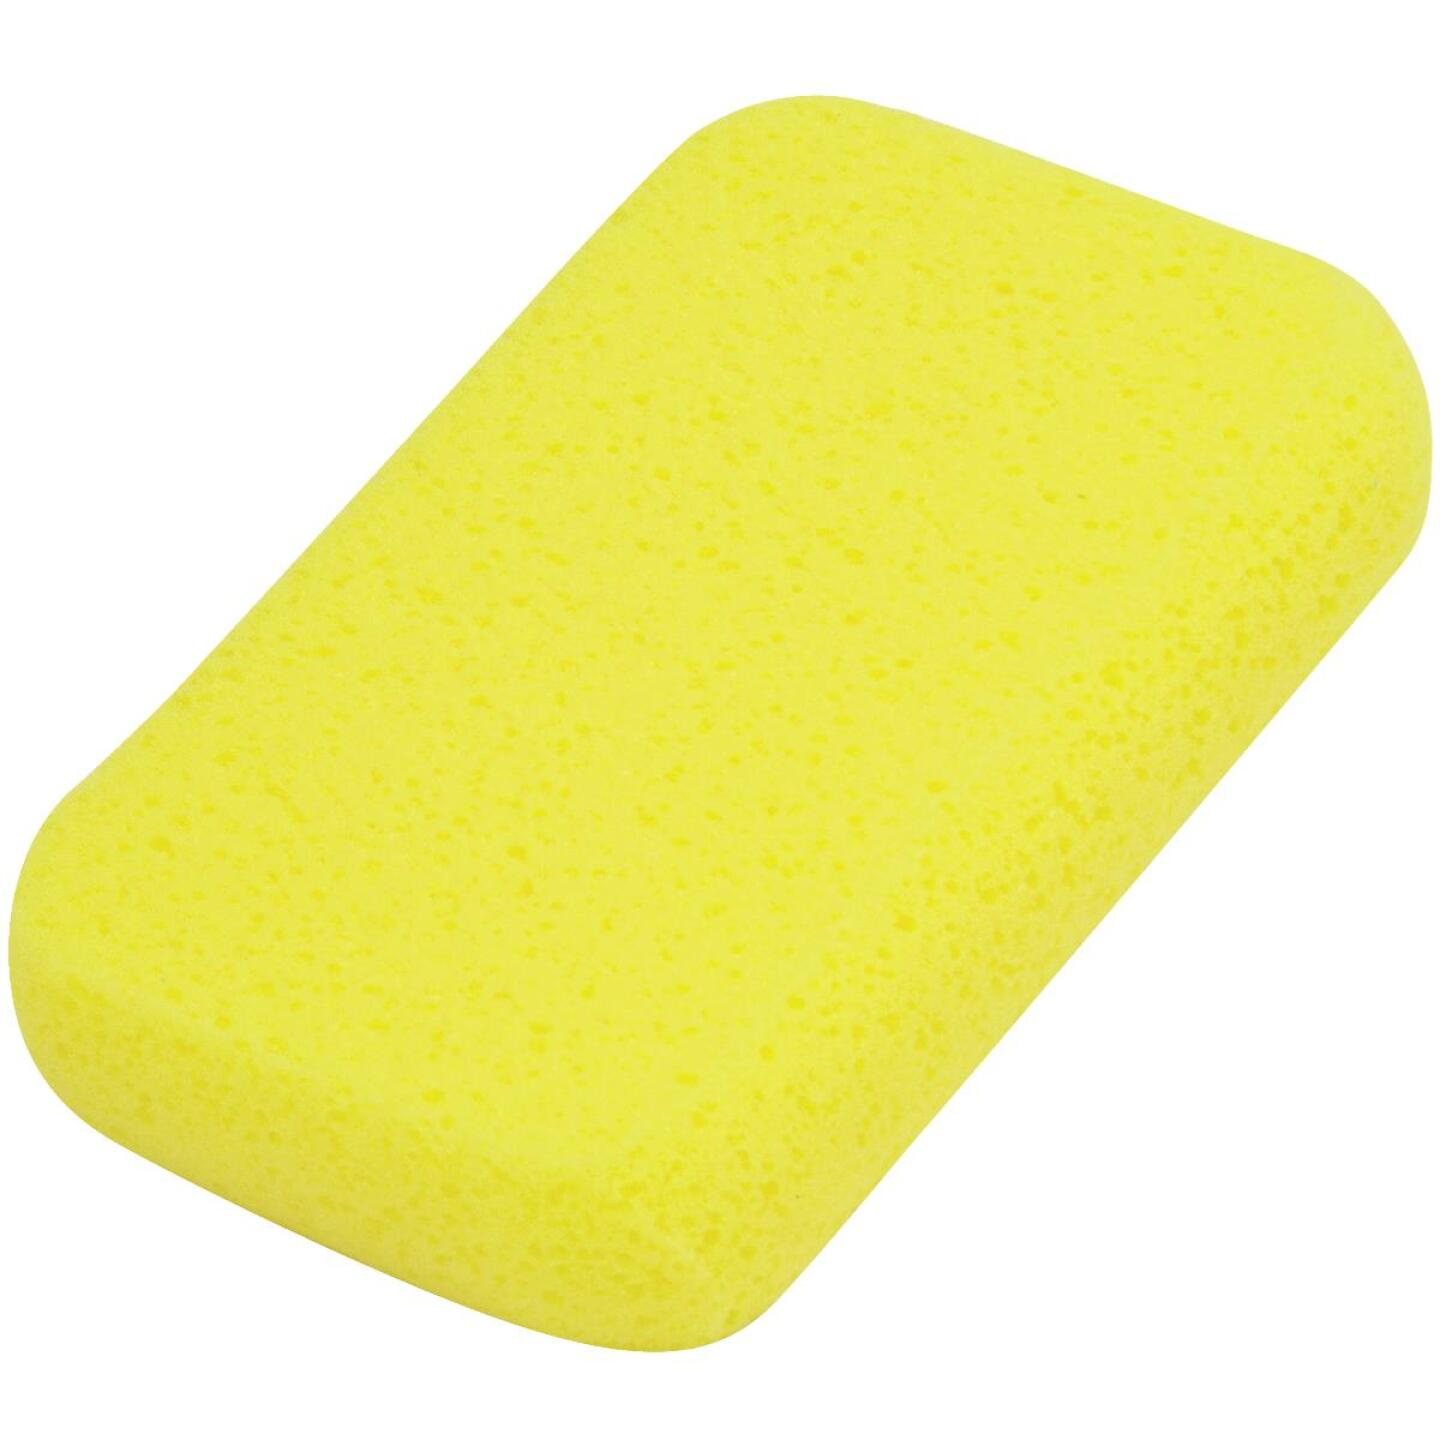 Do it Tile 7-1/4 In. L Grout Sponge Image 1